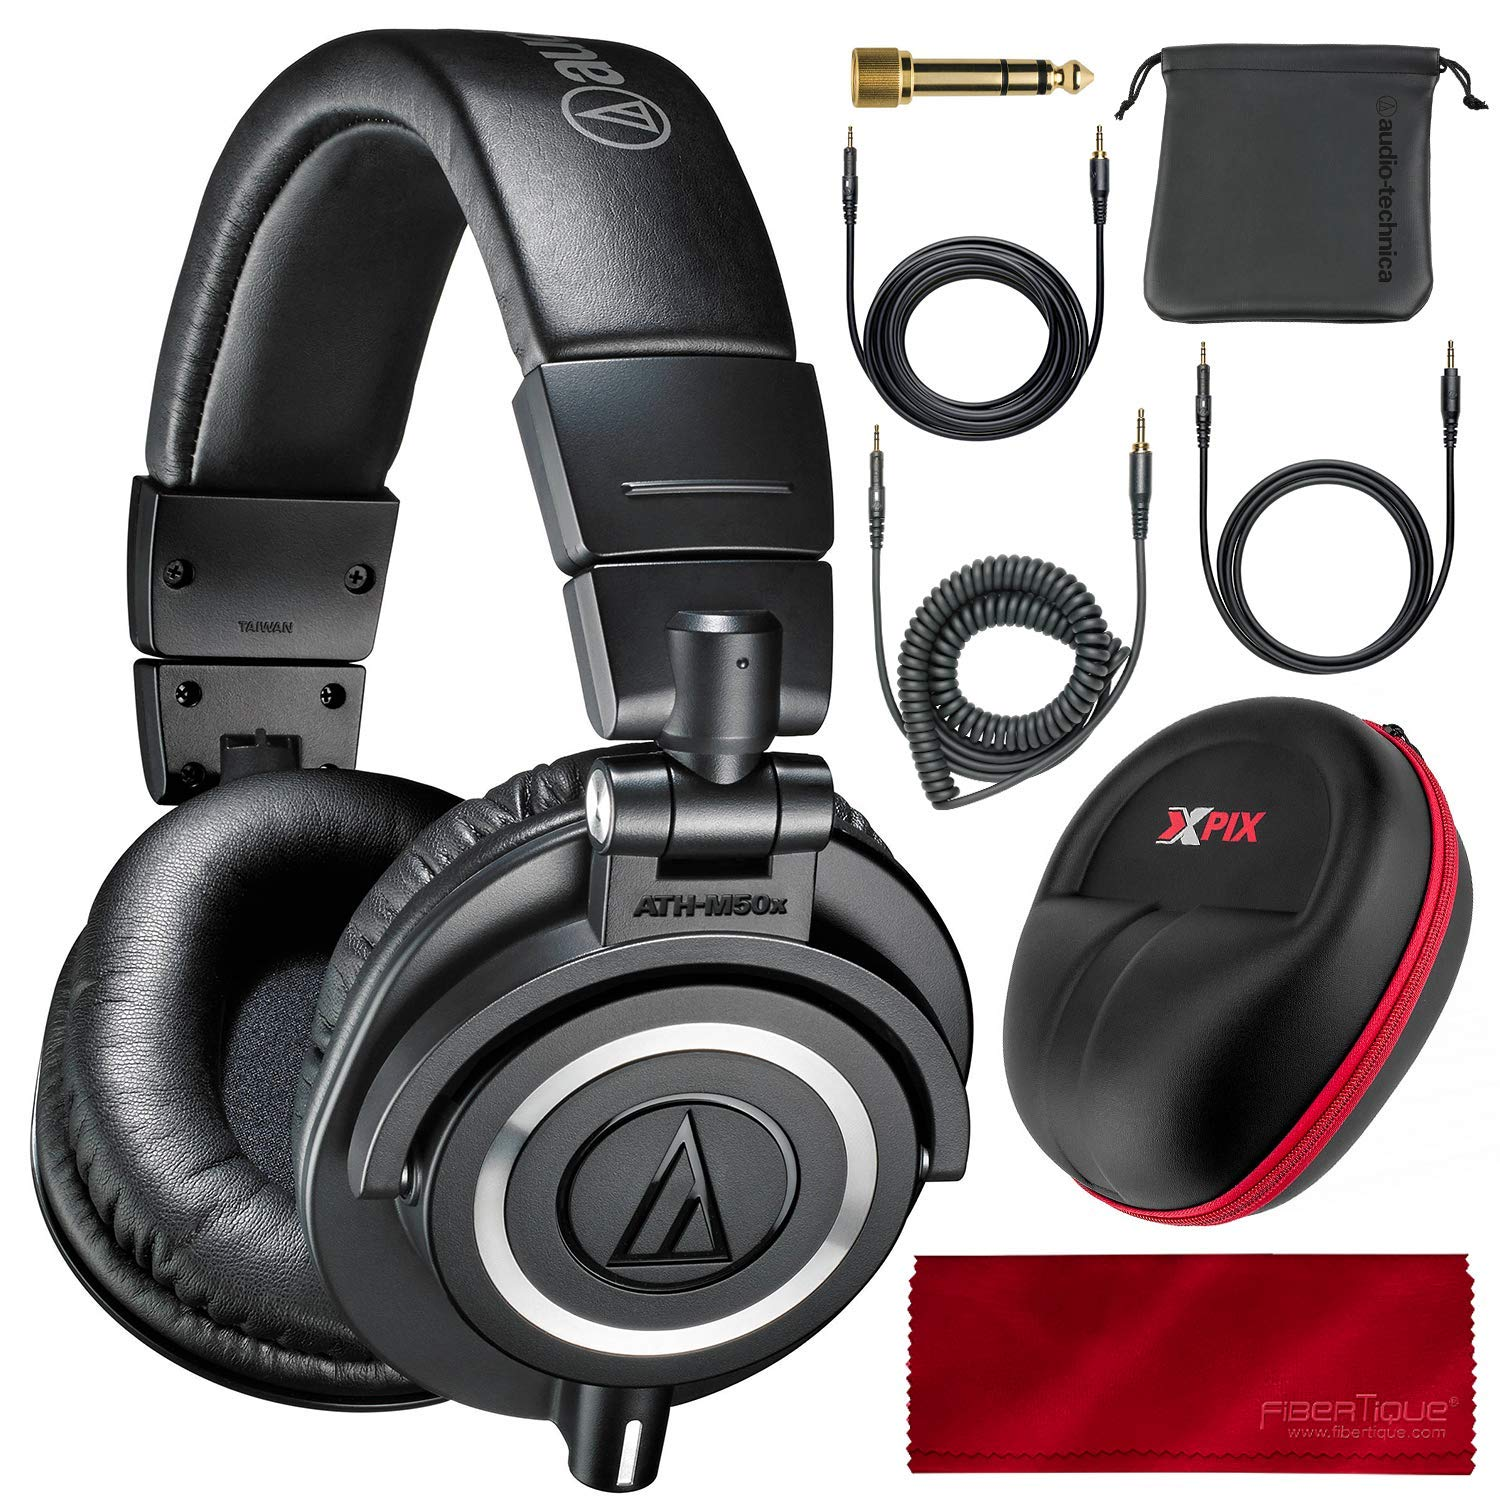 Audio Technica ATH-M50X Monitor Headphones (Black) Professional Kit, with Carrying Case, Fibertique Cleaning Cloth and 3 Cables - For DJs, Studio Recording and Listening